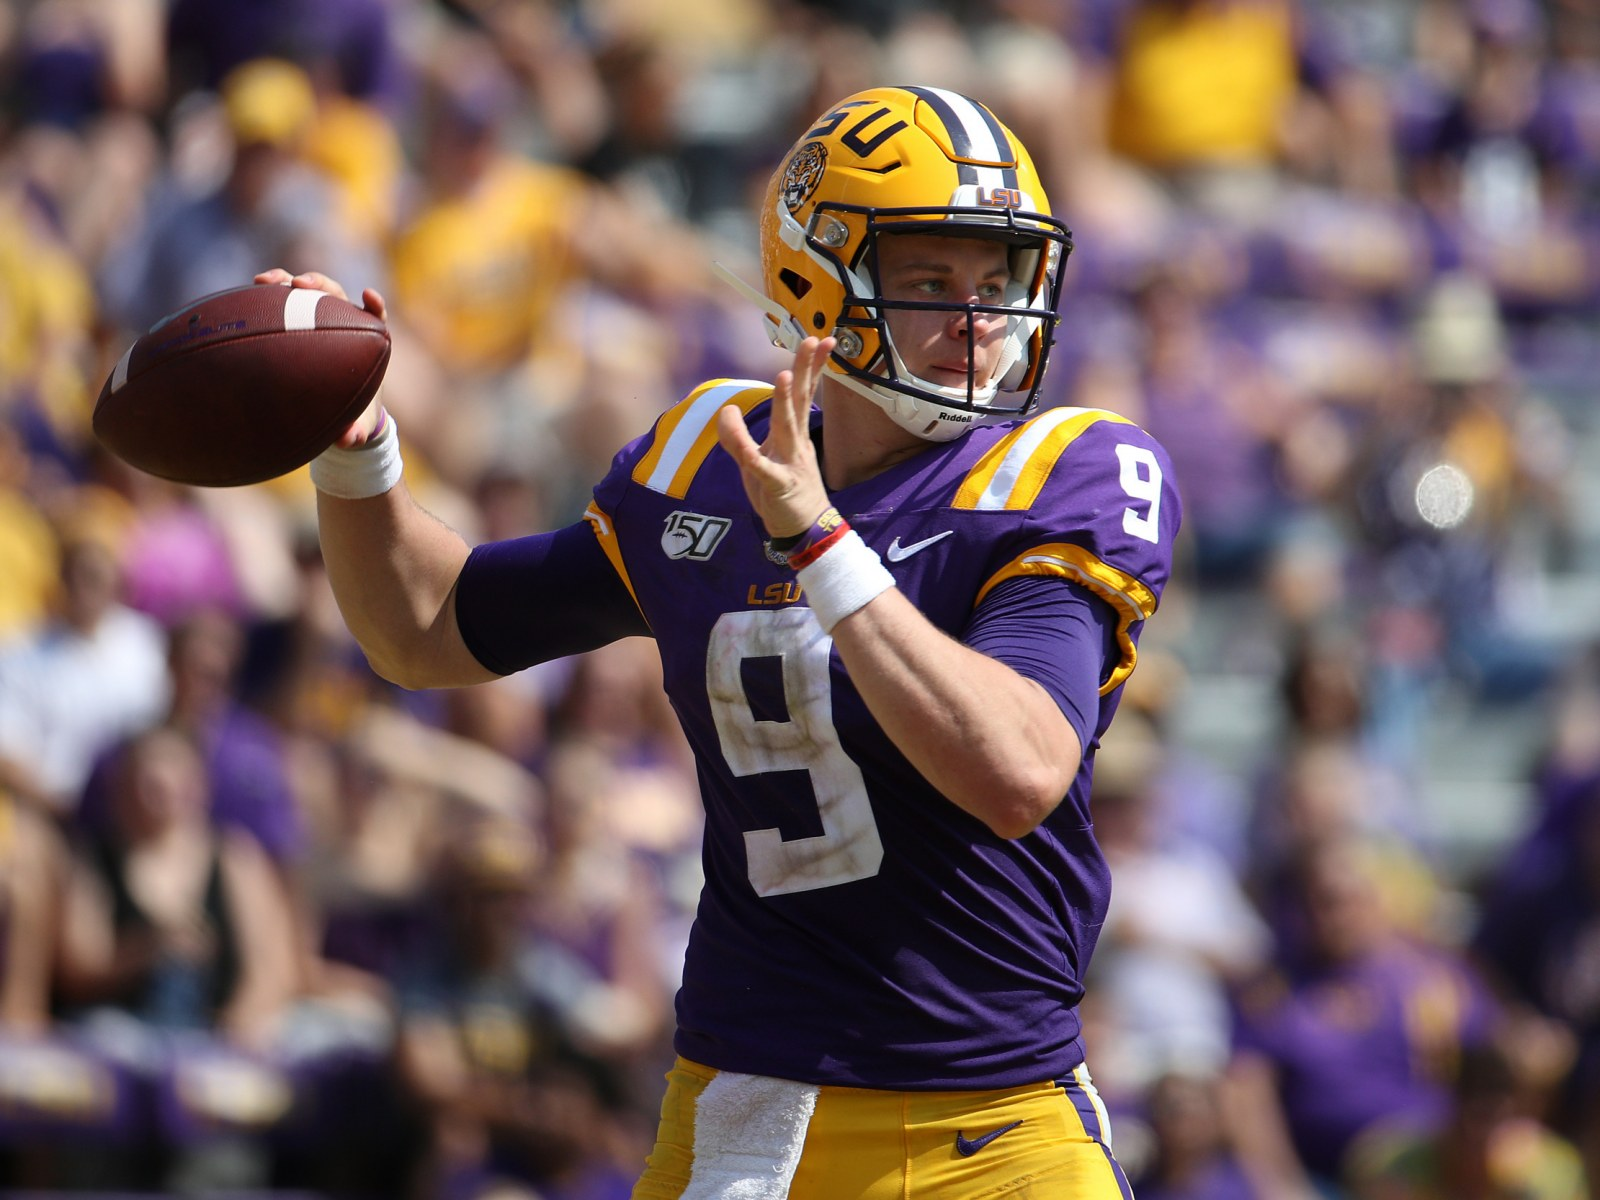 College Football 2019 Where to Watch Florida vs LSU TV Channel 1600x1200